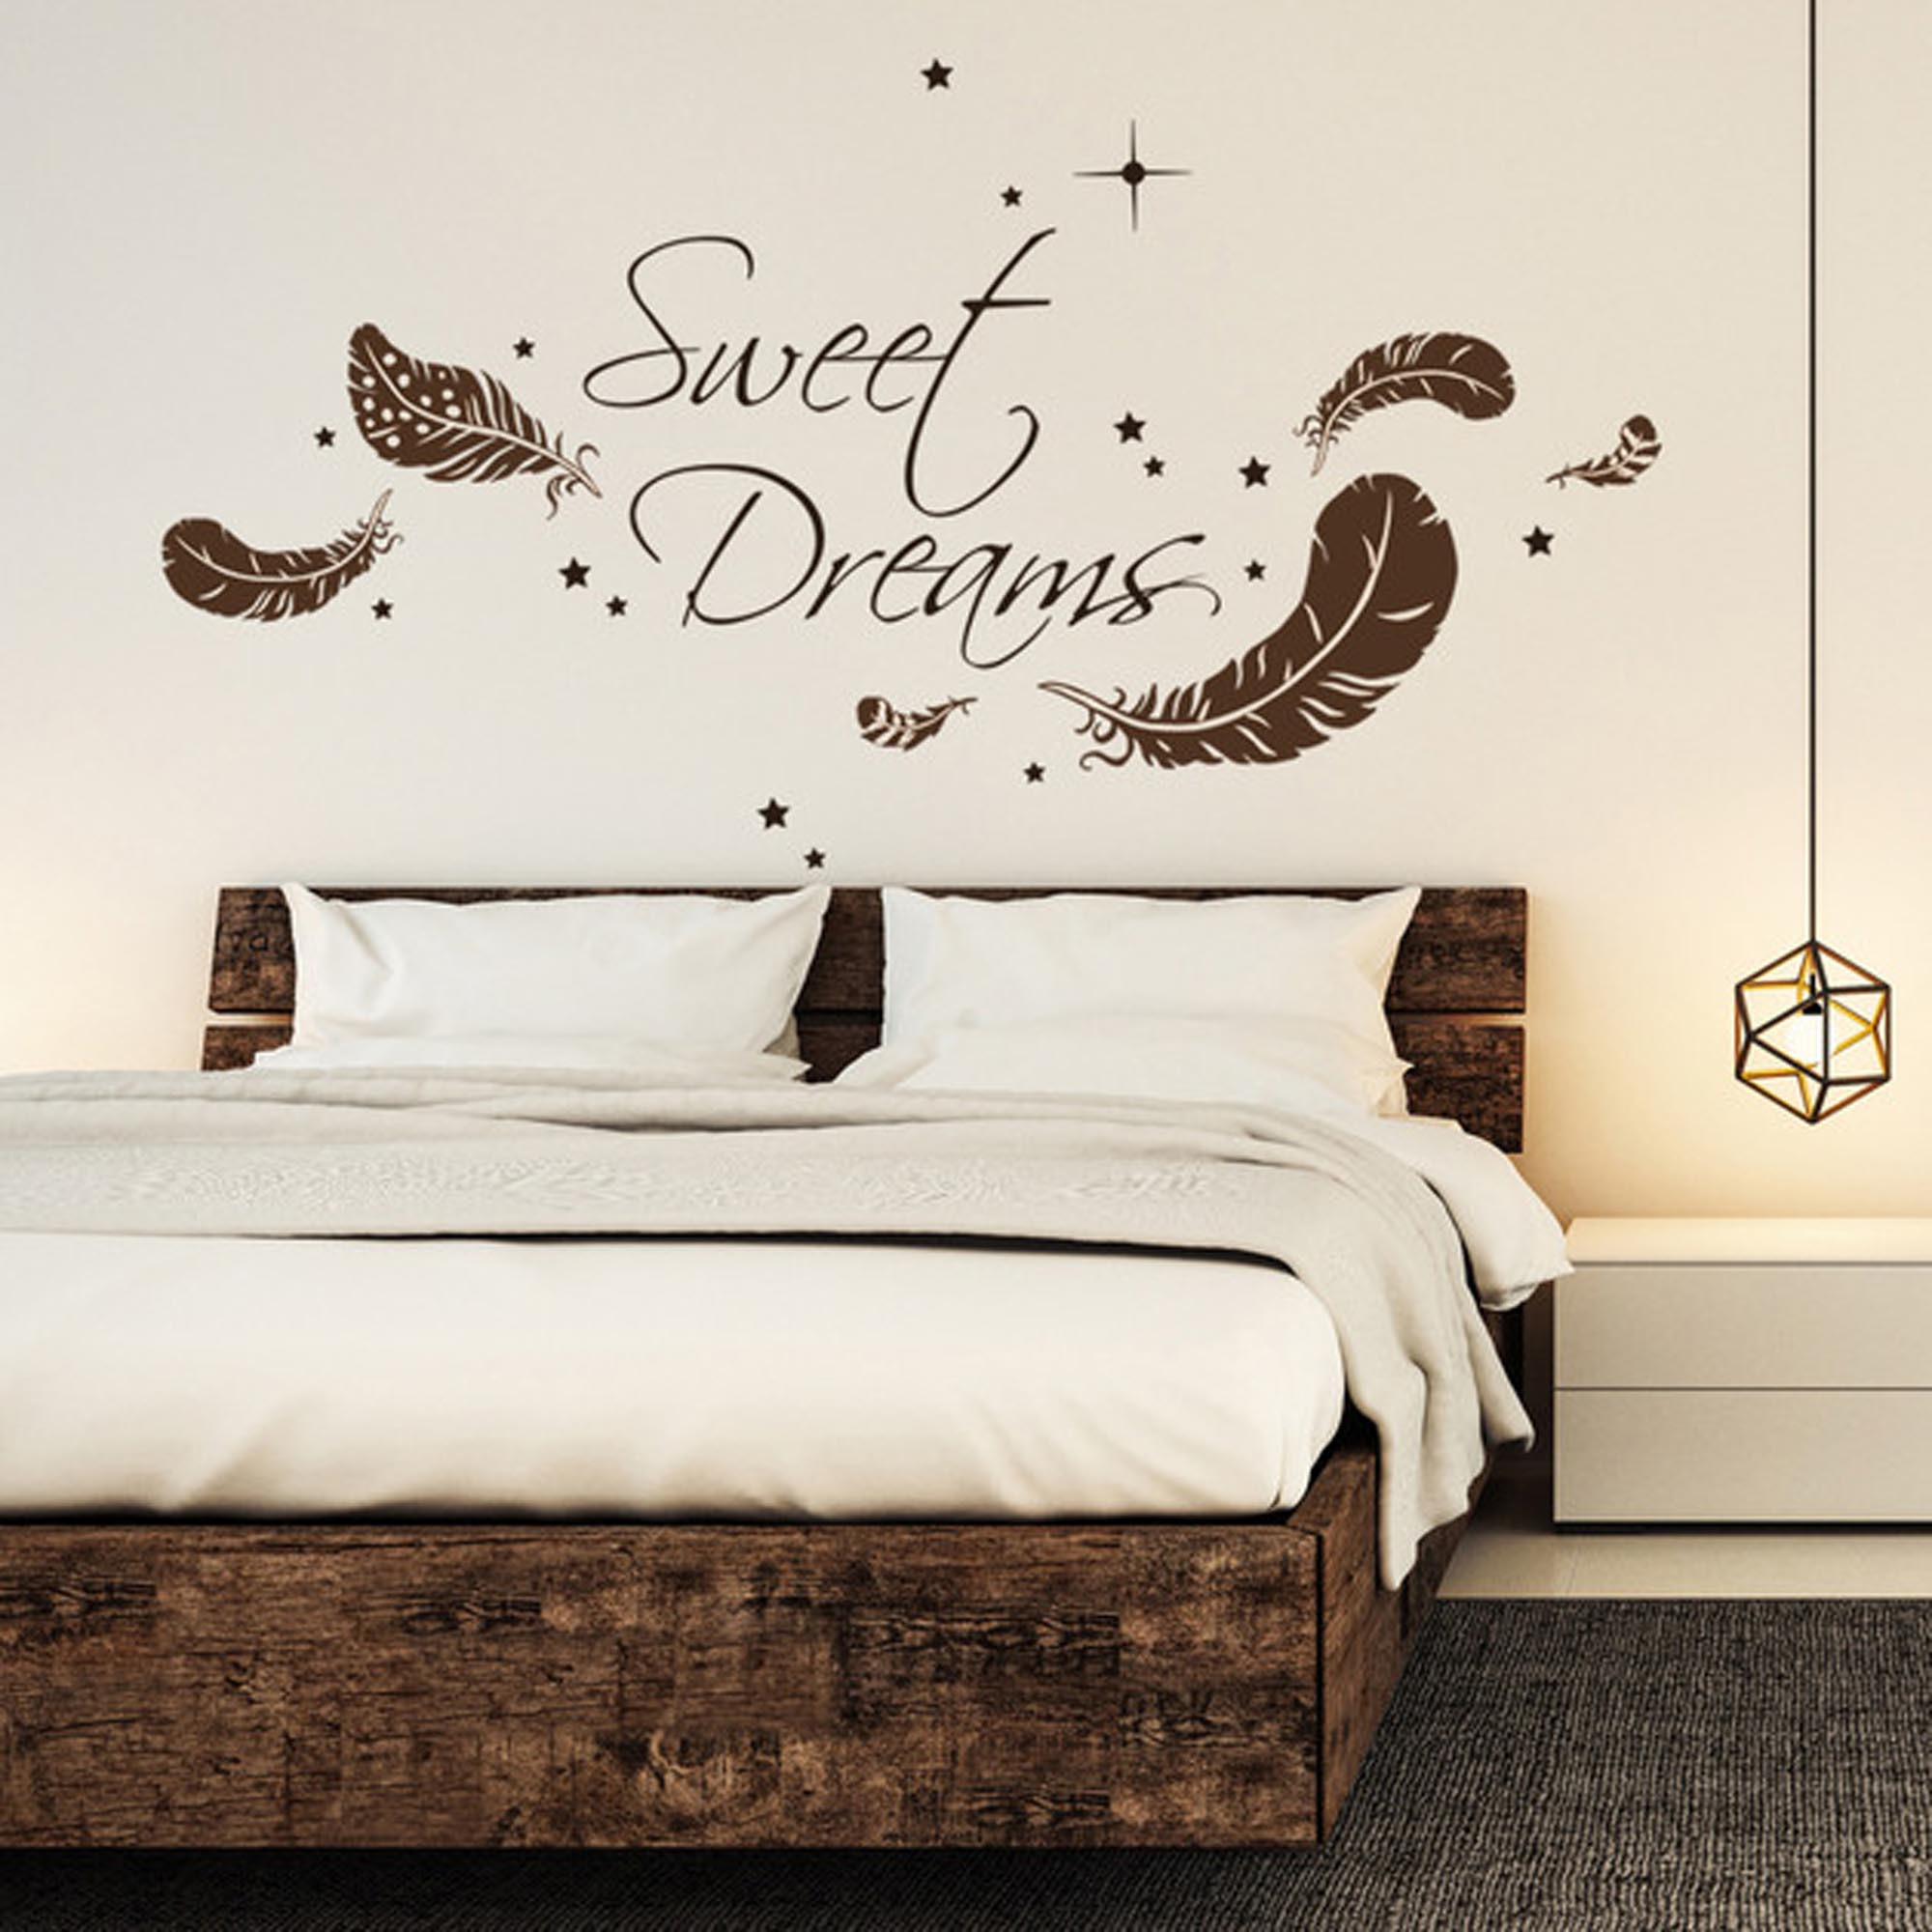 wandtattoo sweet dreams mit federn und sternen m1759 wandtattoos elfent r tassen. Black Bedroom Furniture Sets. Home Design Ideas